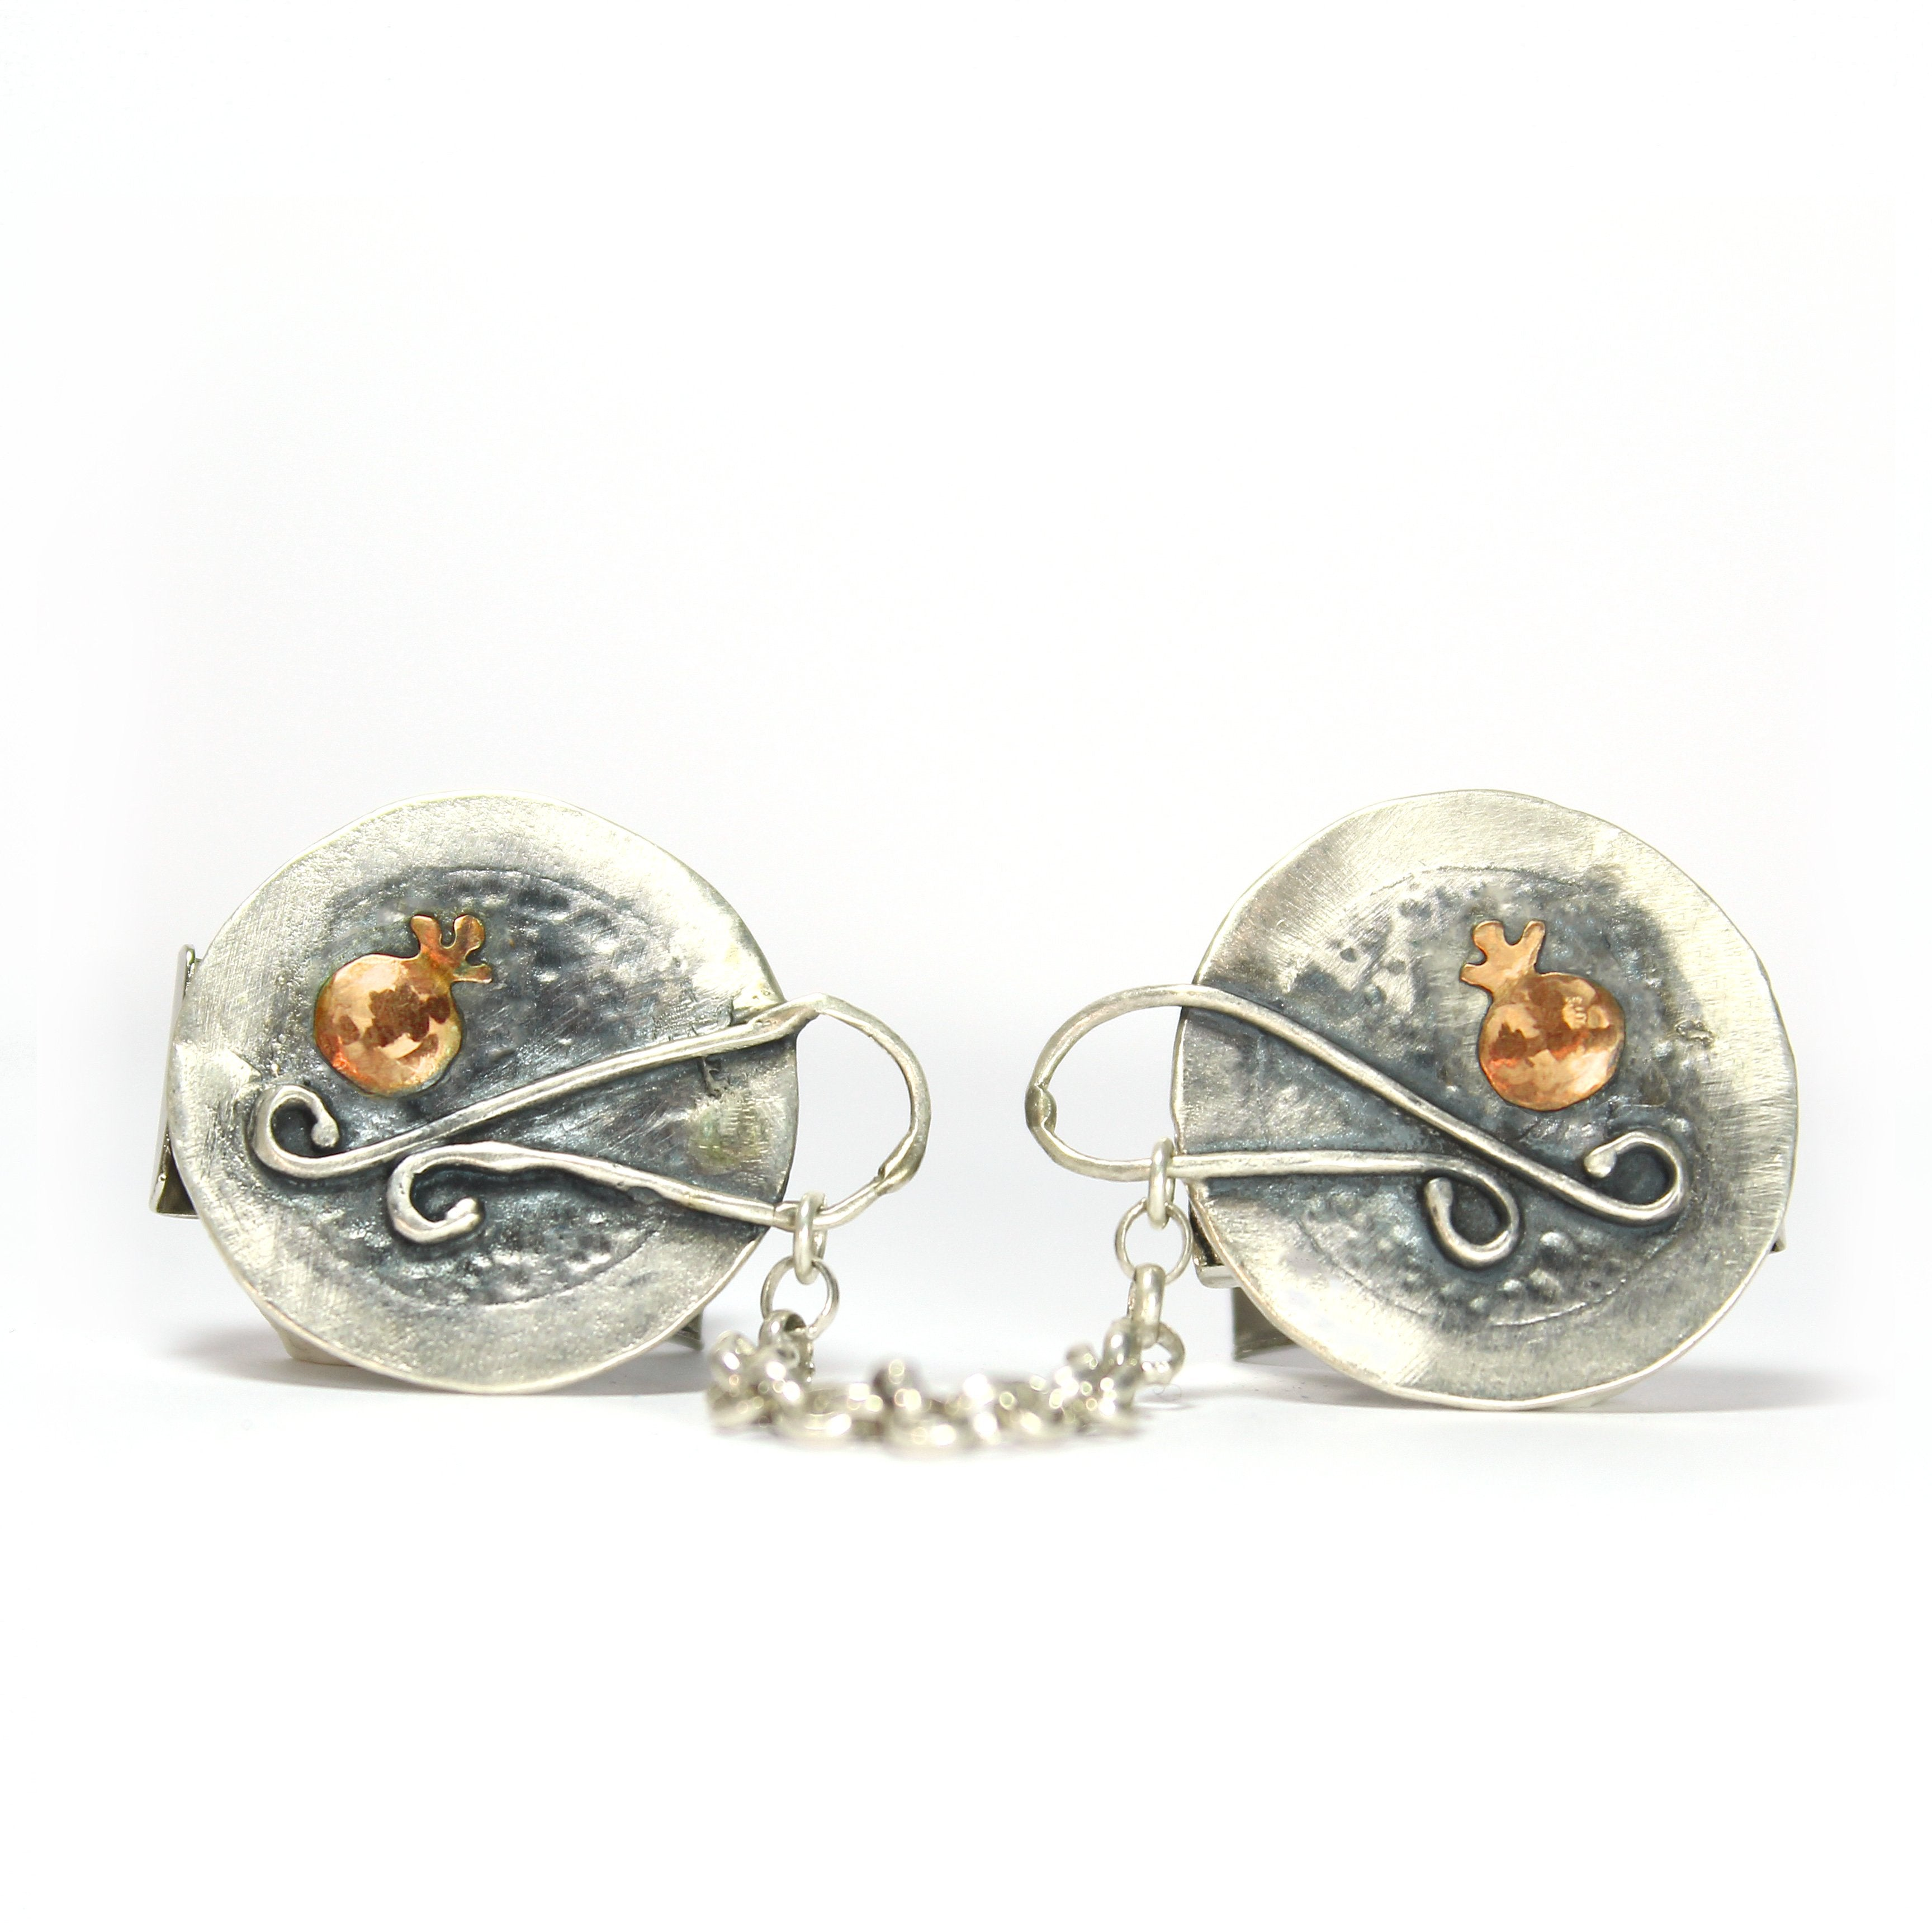 Pomegranate- Silver & Gold Tallit Clips - Shulamit Kanter Official Store